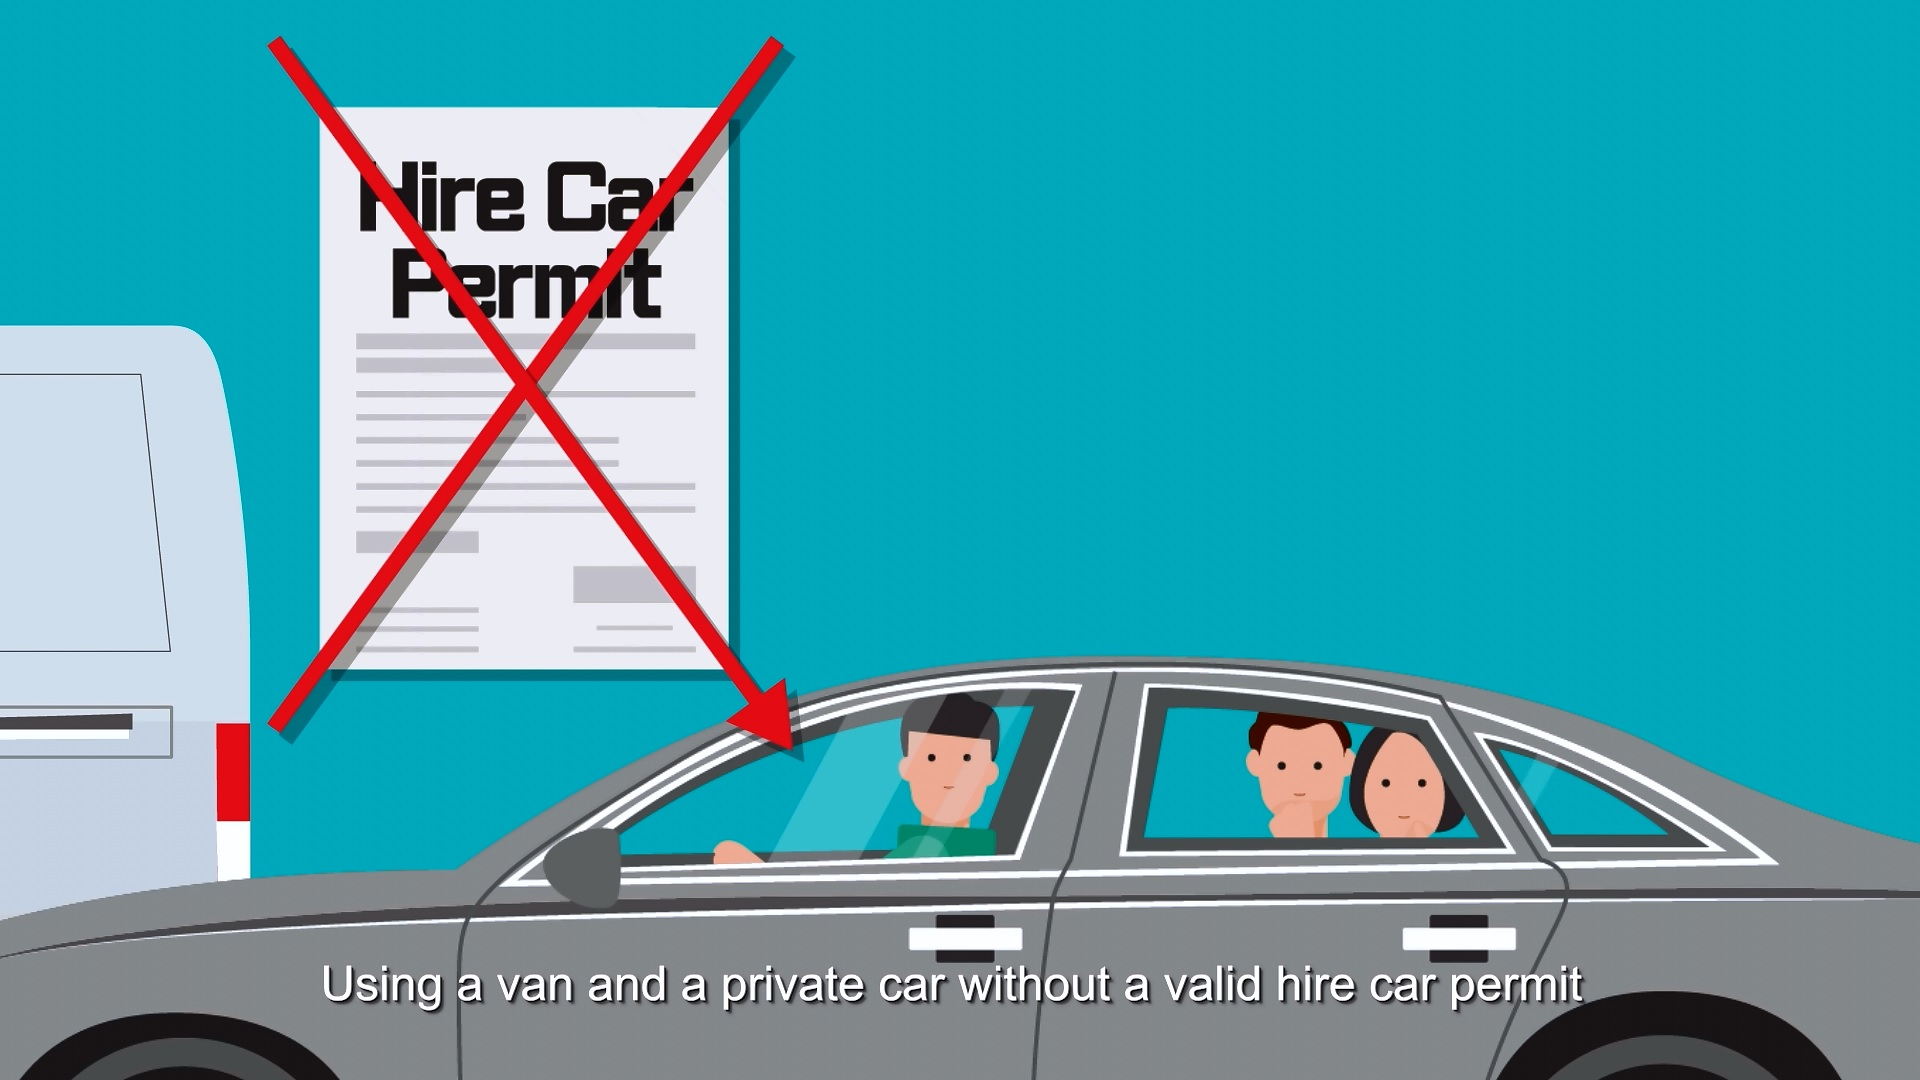 Hire Car Vidoe Screen Cap